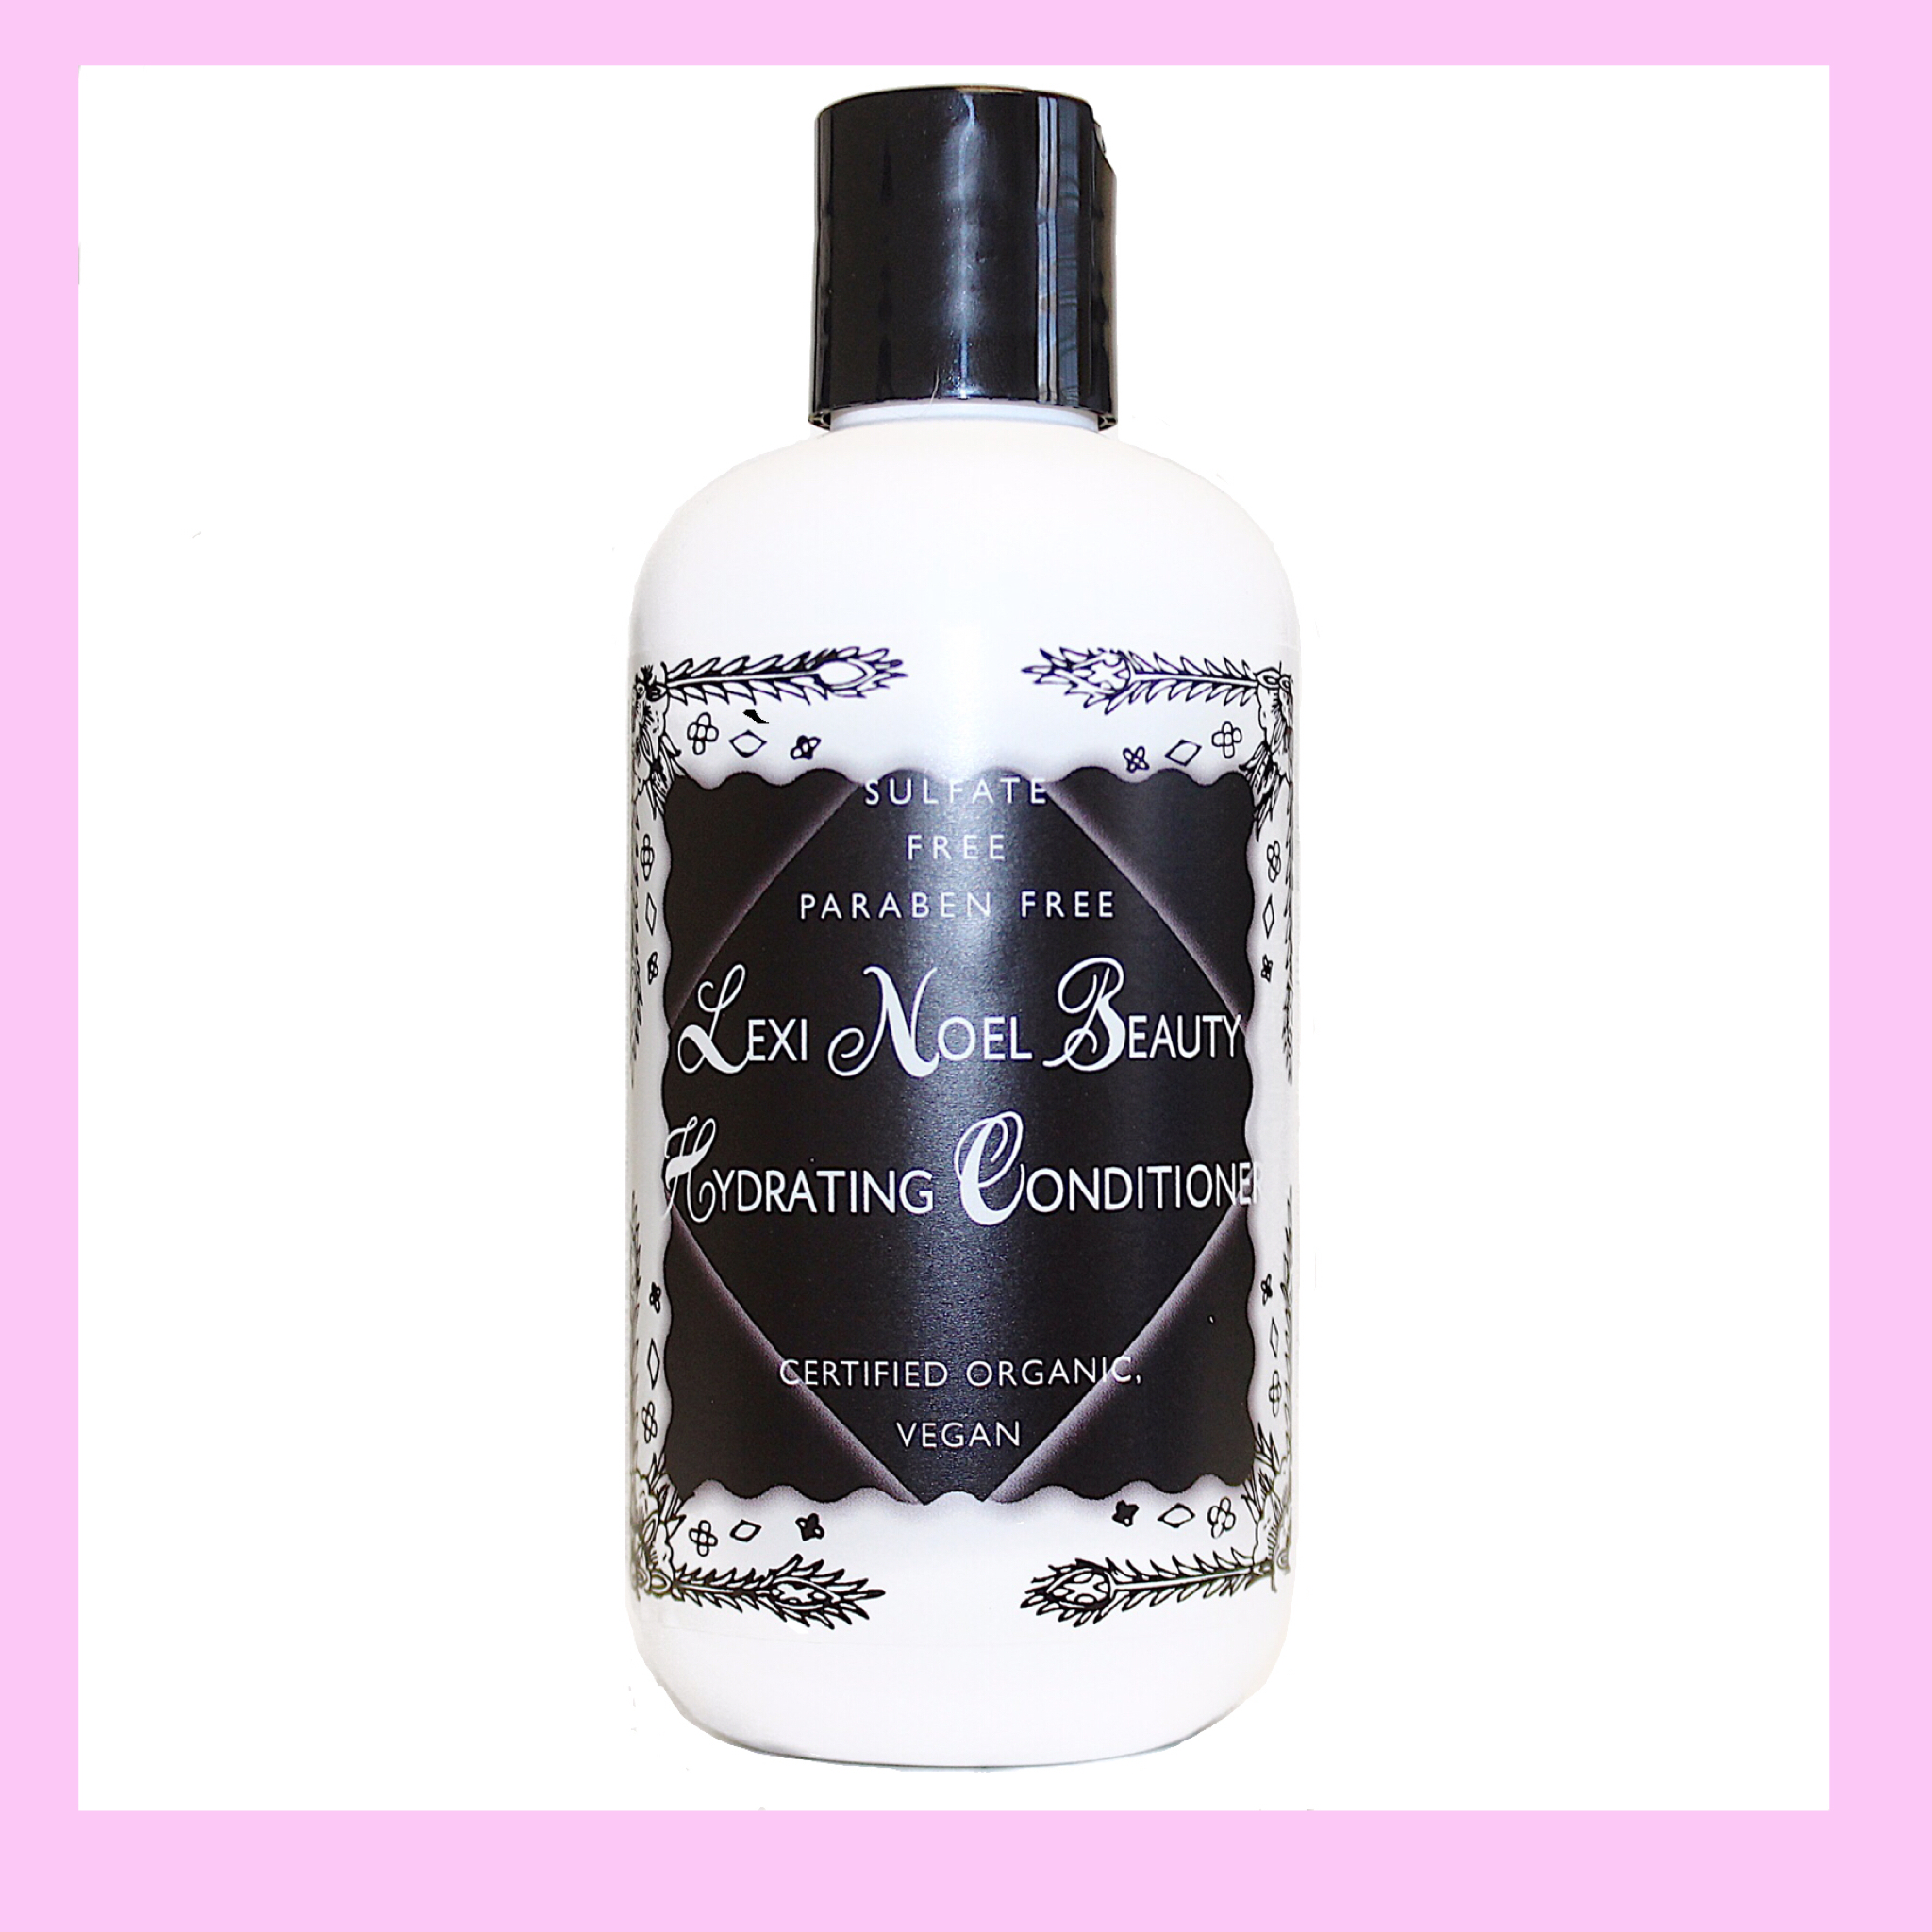 Lexi Noel Beauty Hydrating Conditioner Sulfate Free